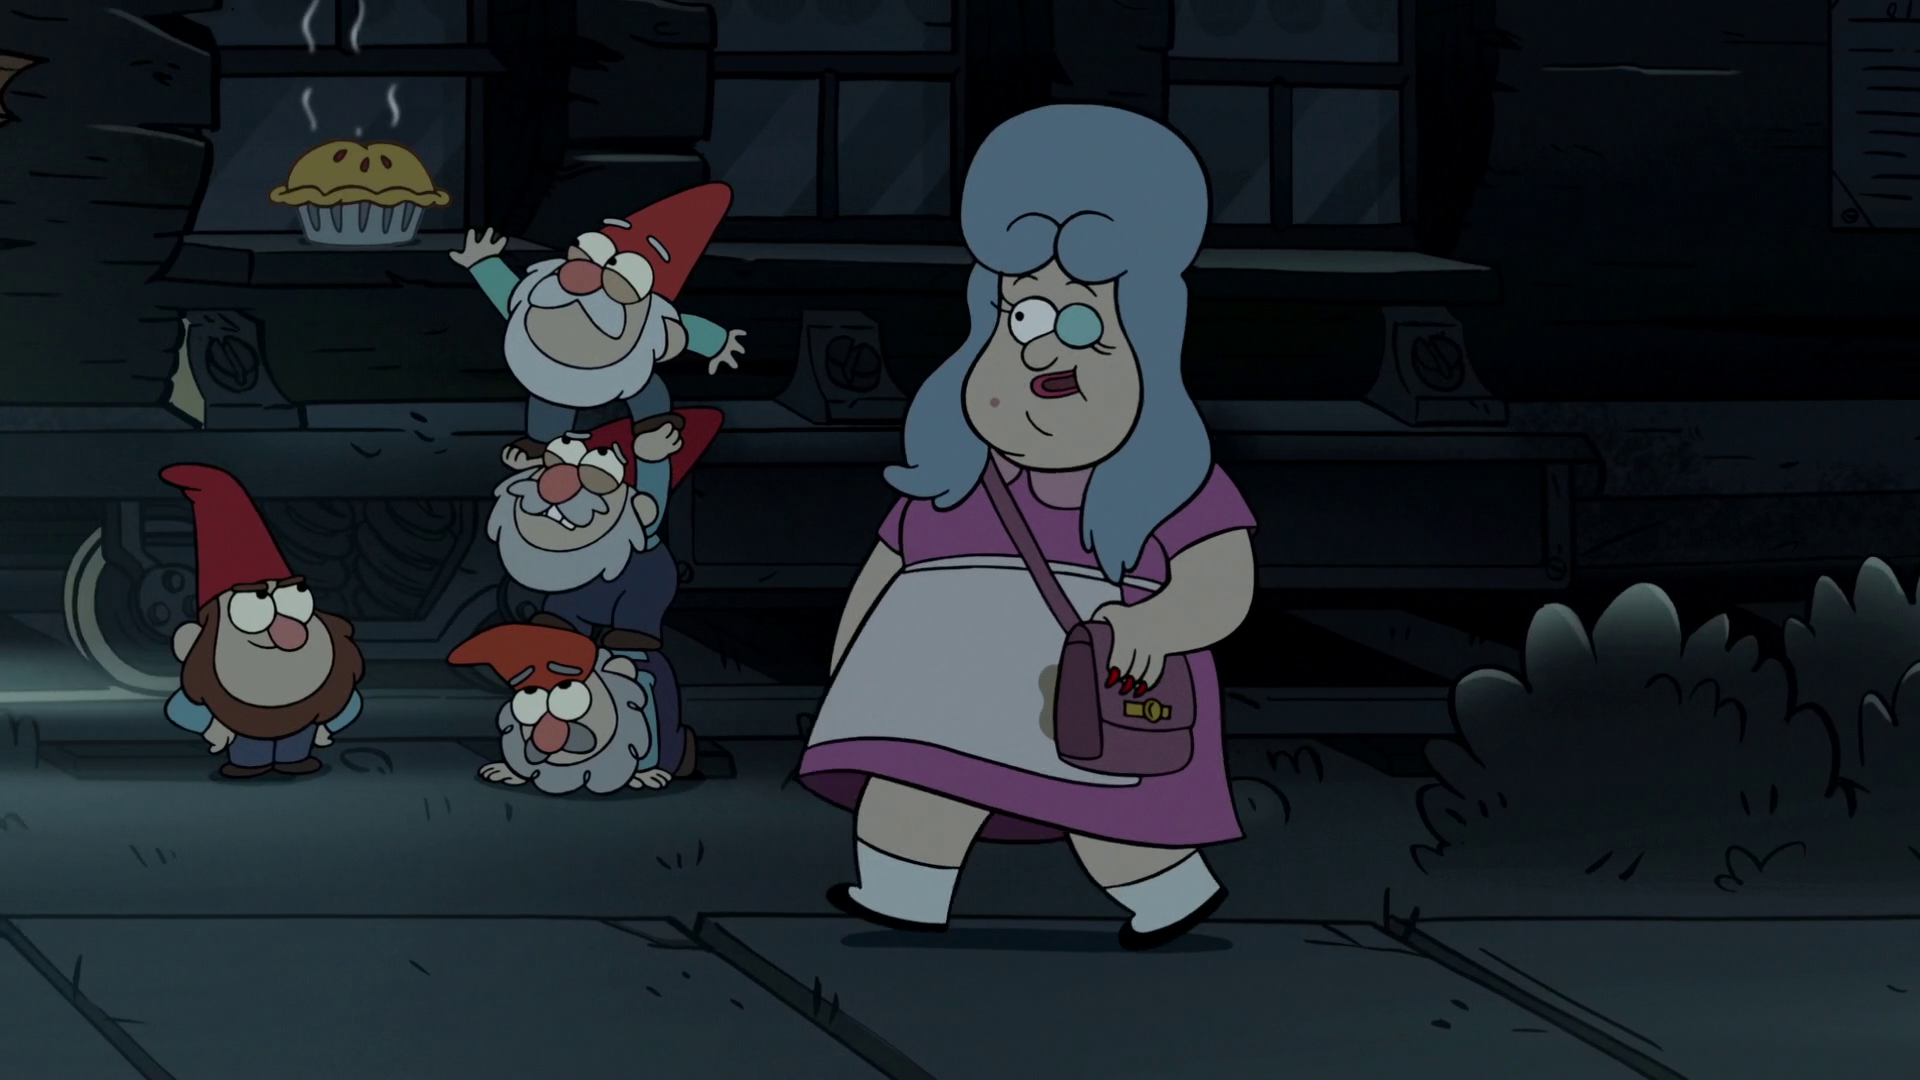 image s2e7 gnome stealing pies png gravity falls wiki fandom